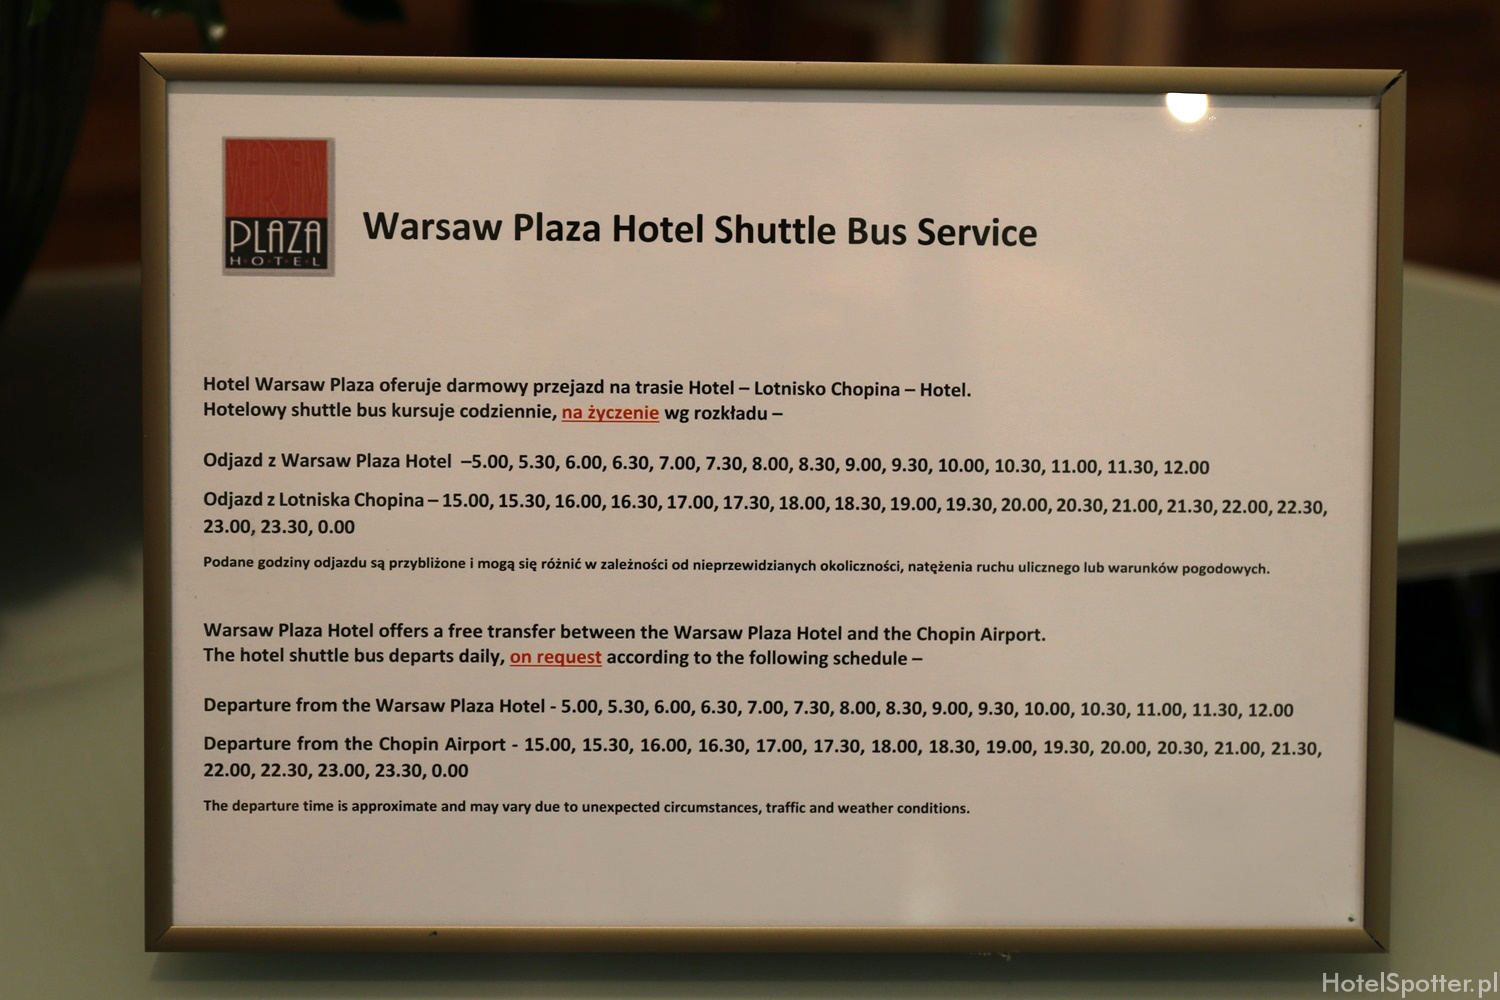 Warsaw Plaza Hotel - shuttle bus